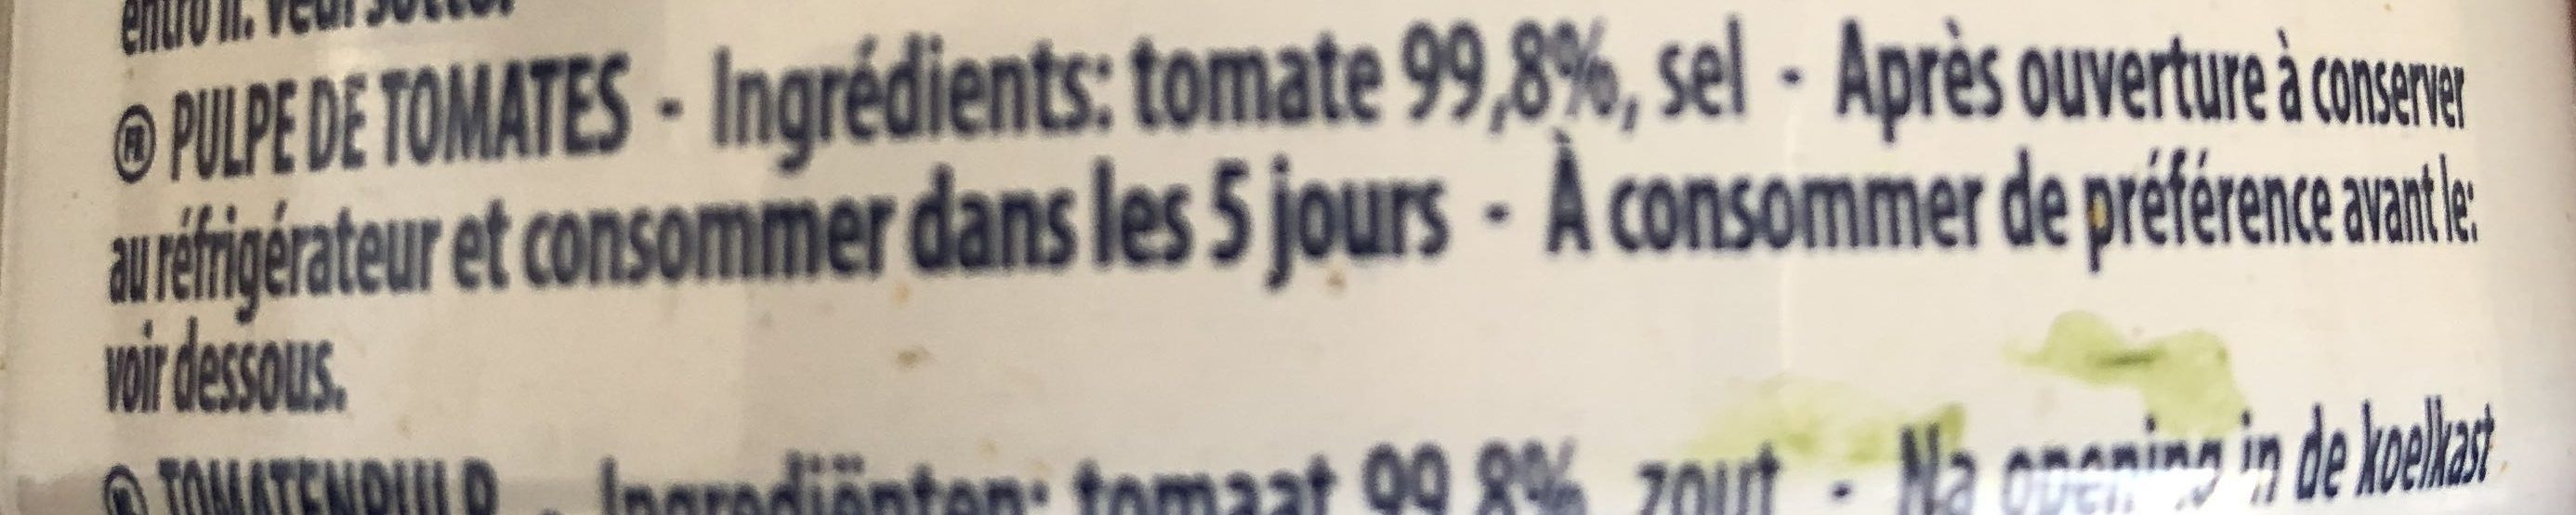 Pulpe fine de tomates - Ingredients - fr